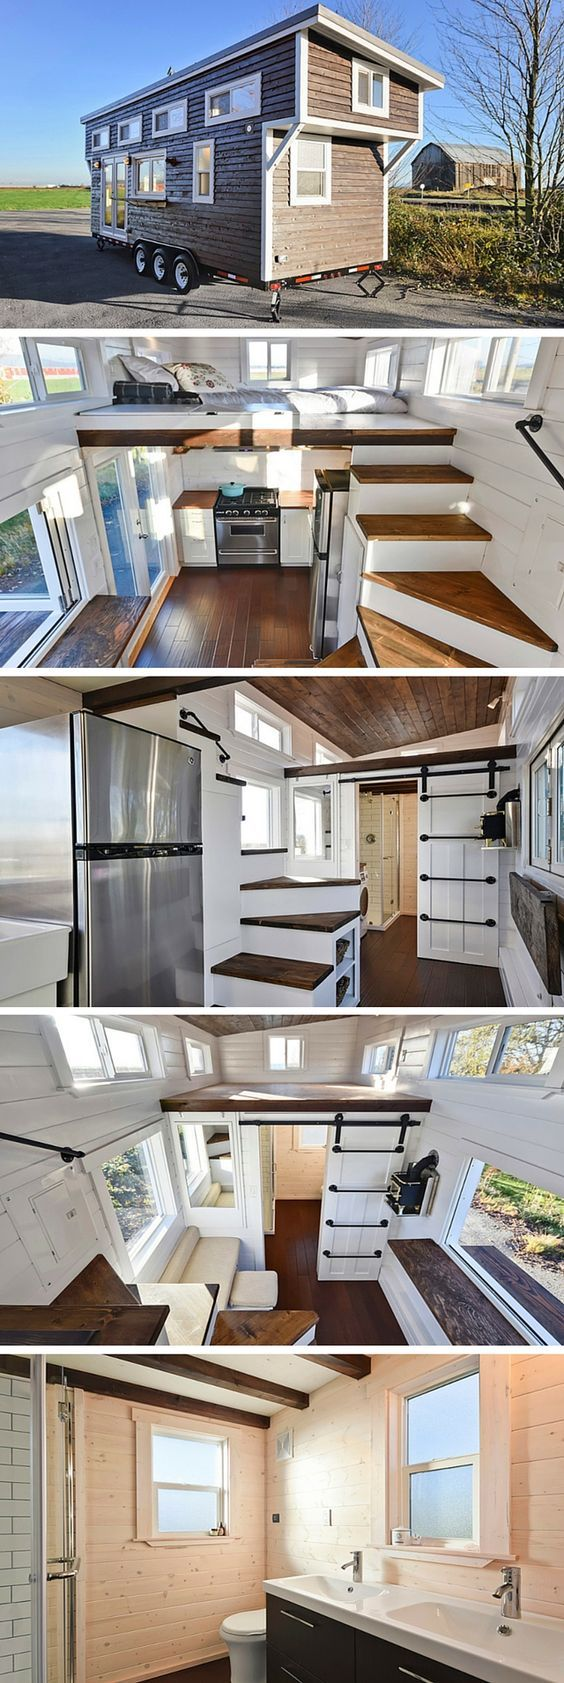 Tinyhouse  the lofts  steps as counterspace in kitchen fold down counter shelf ladder to other loft on outside of bathroom slide barn also best tiny house ideas images nice houses snuggles rh pinterest